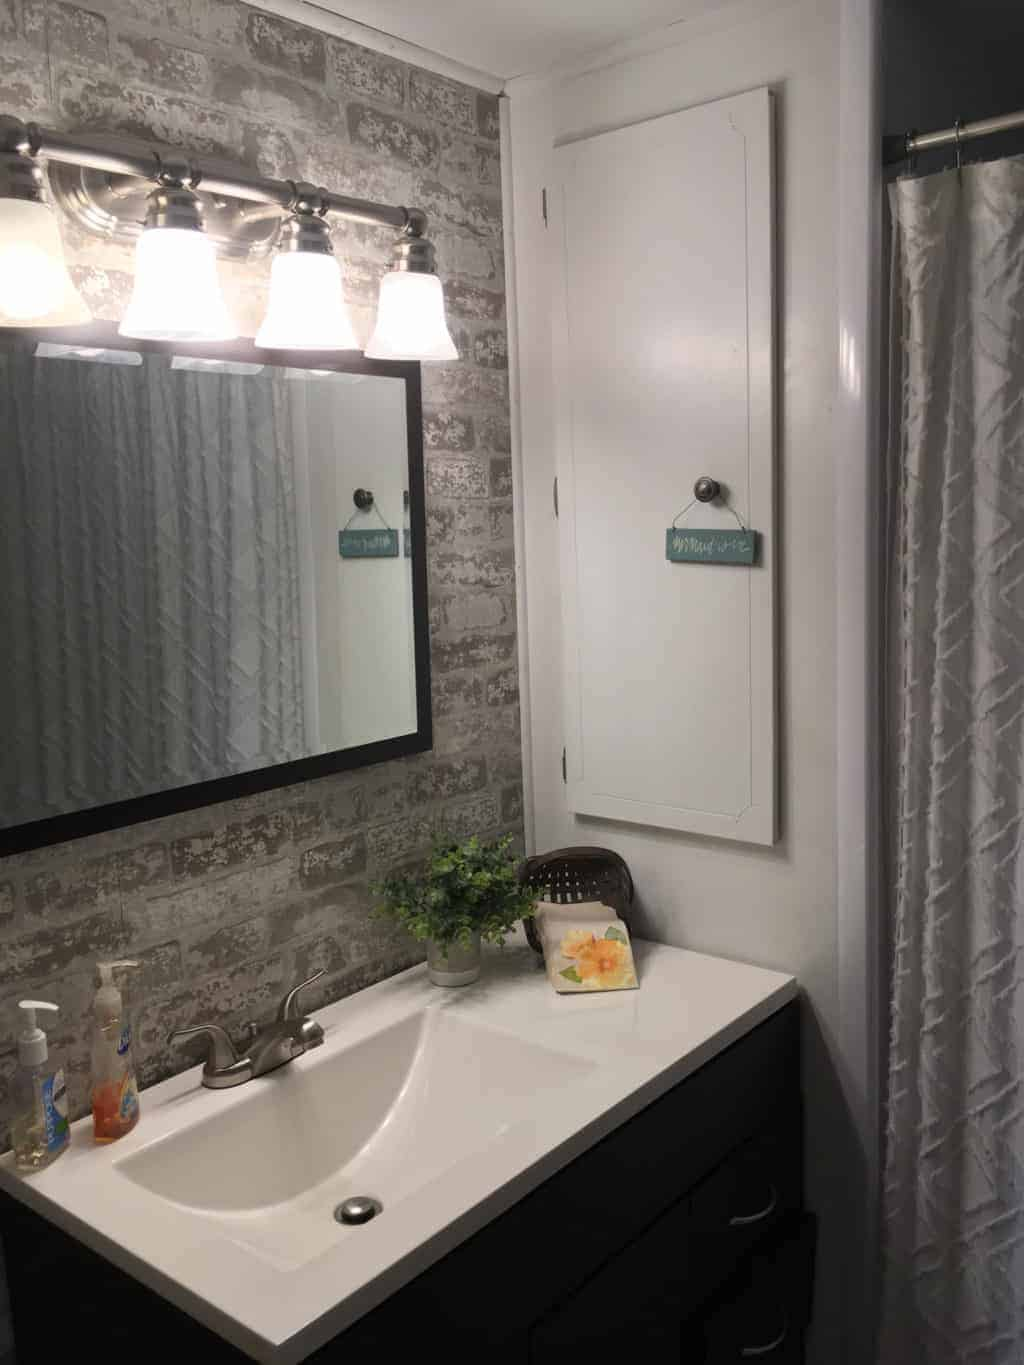 1964 chateau master bath with new light fixture is gorgeous best decorating hacks for mobile homes 1